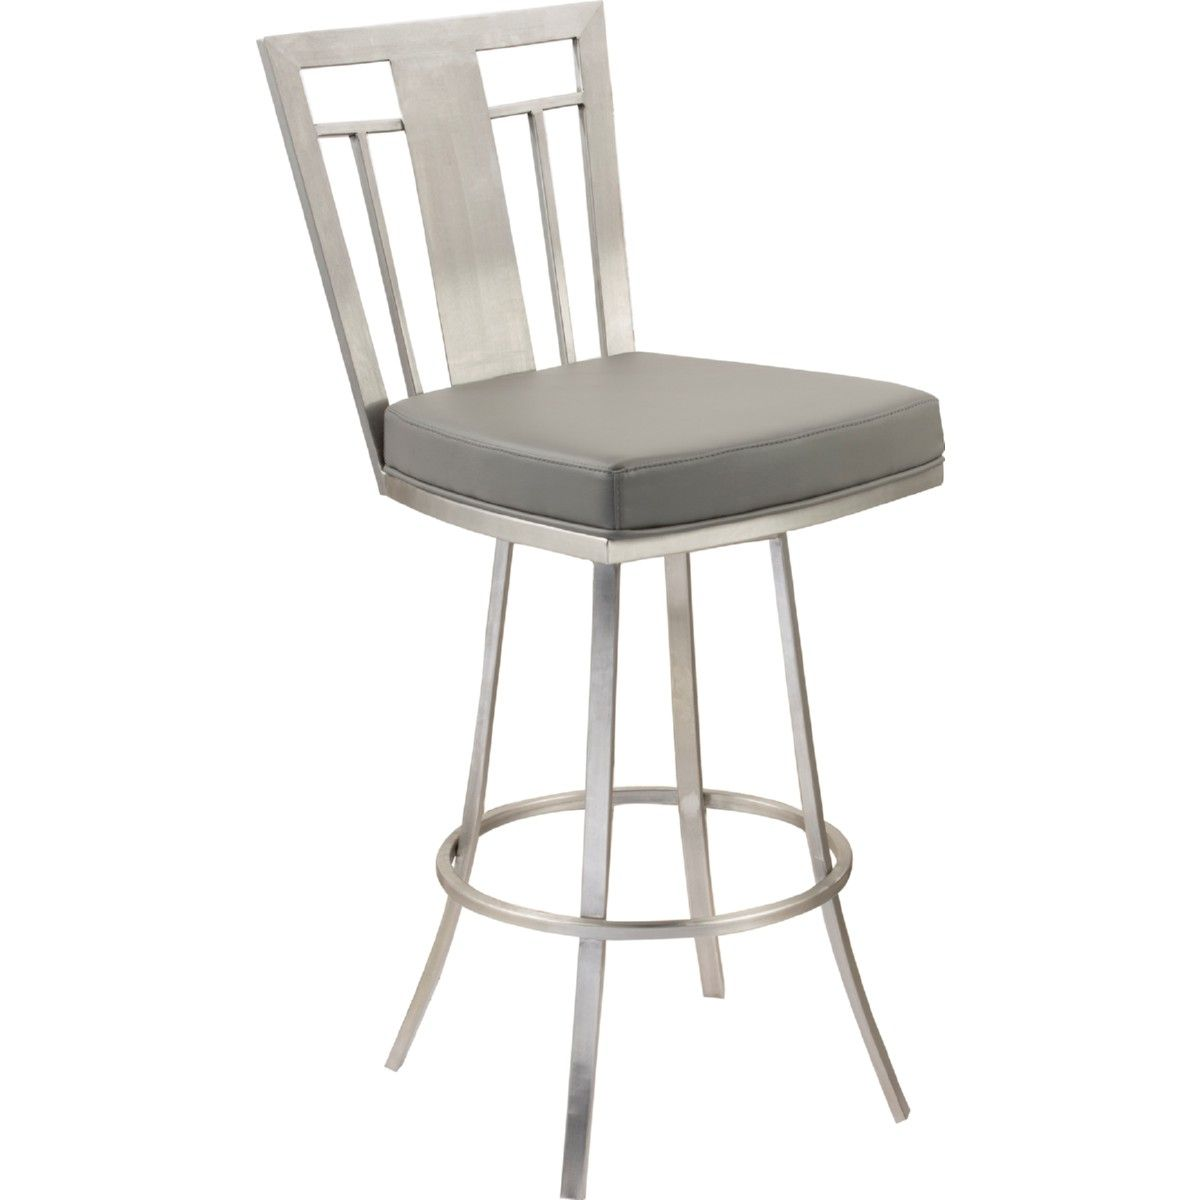 Armen Cleo 26 Modern Swivel Bar Stool Gray Leatherette Stainless Steel Bar Stools Swivel Counter Stools Stool